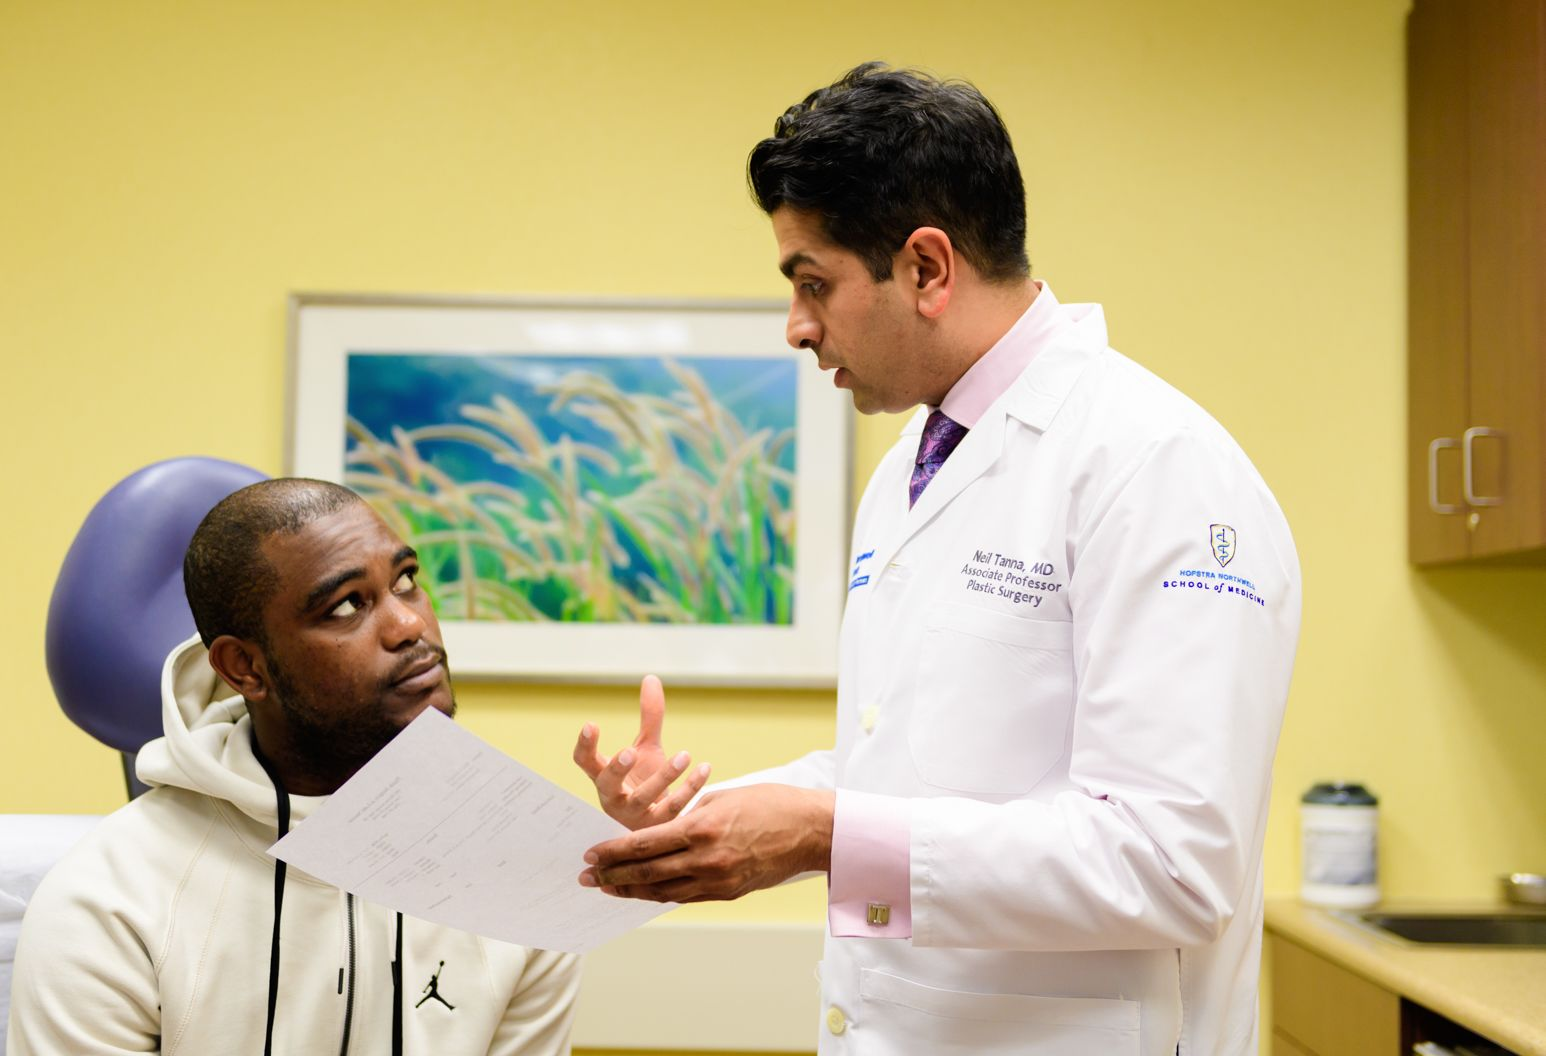 Man in white doctors coat holds a paper in his left hand as he explains something to an attentive dark-skinned male sitting in a purple chair.